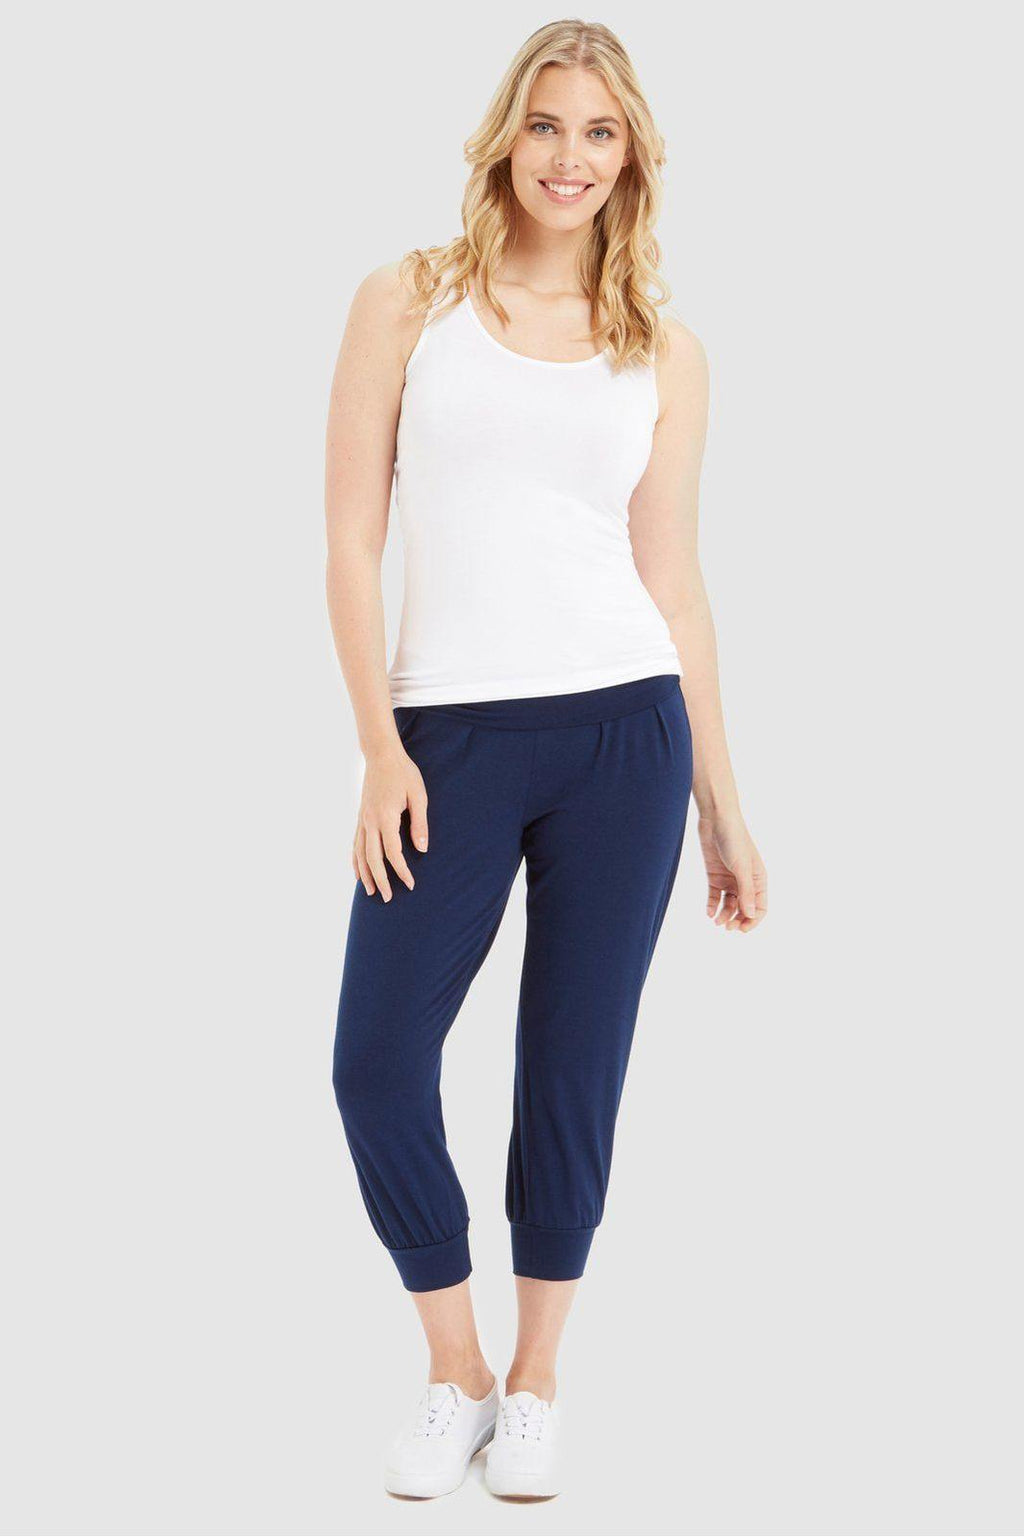 Bamboo Body Summer Slouch Pant - Navy - Weekends on 2nd Ave